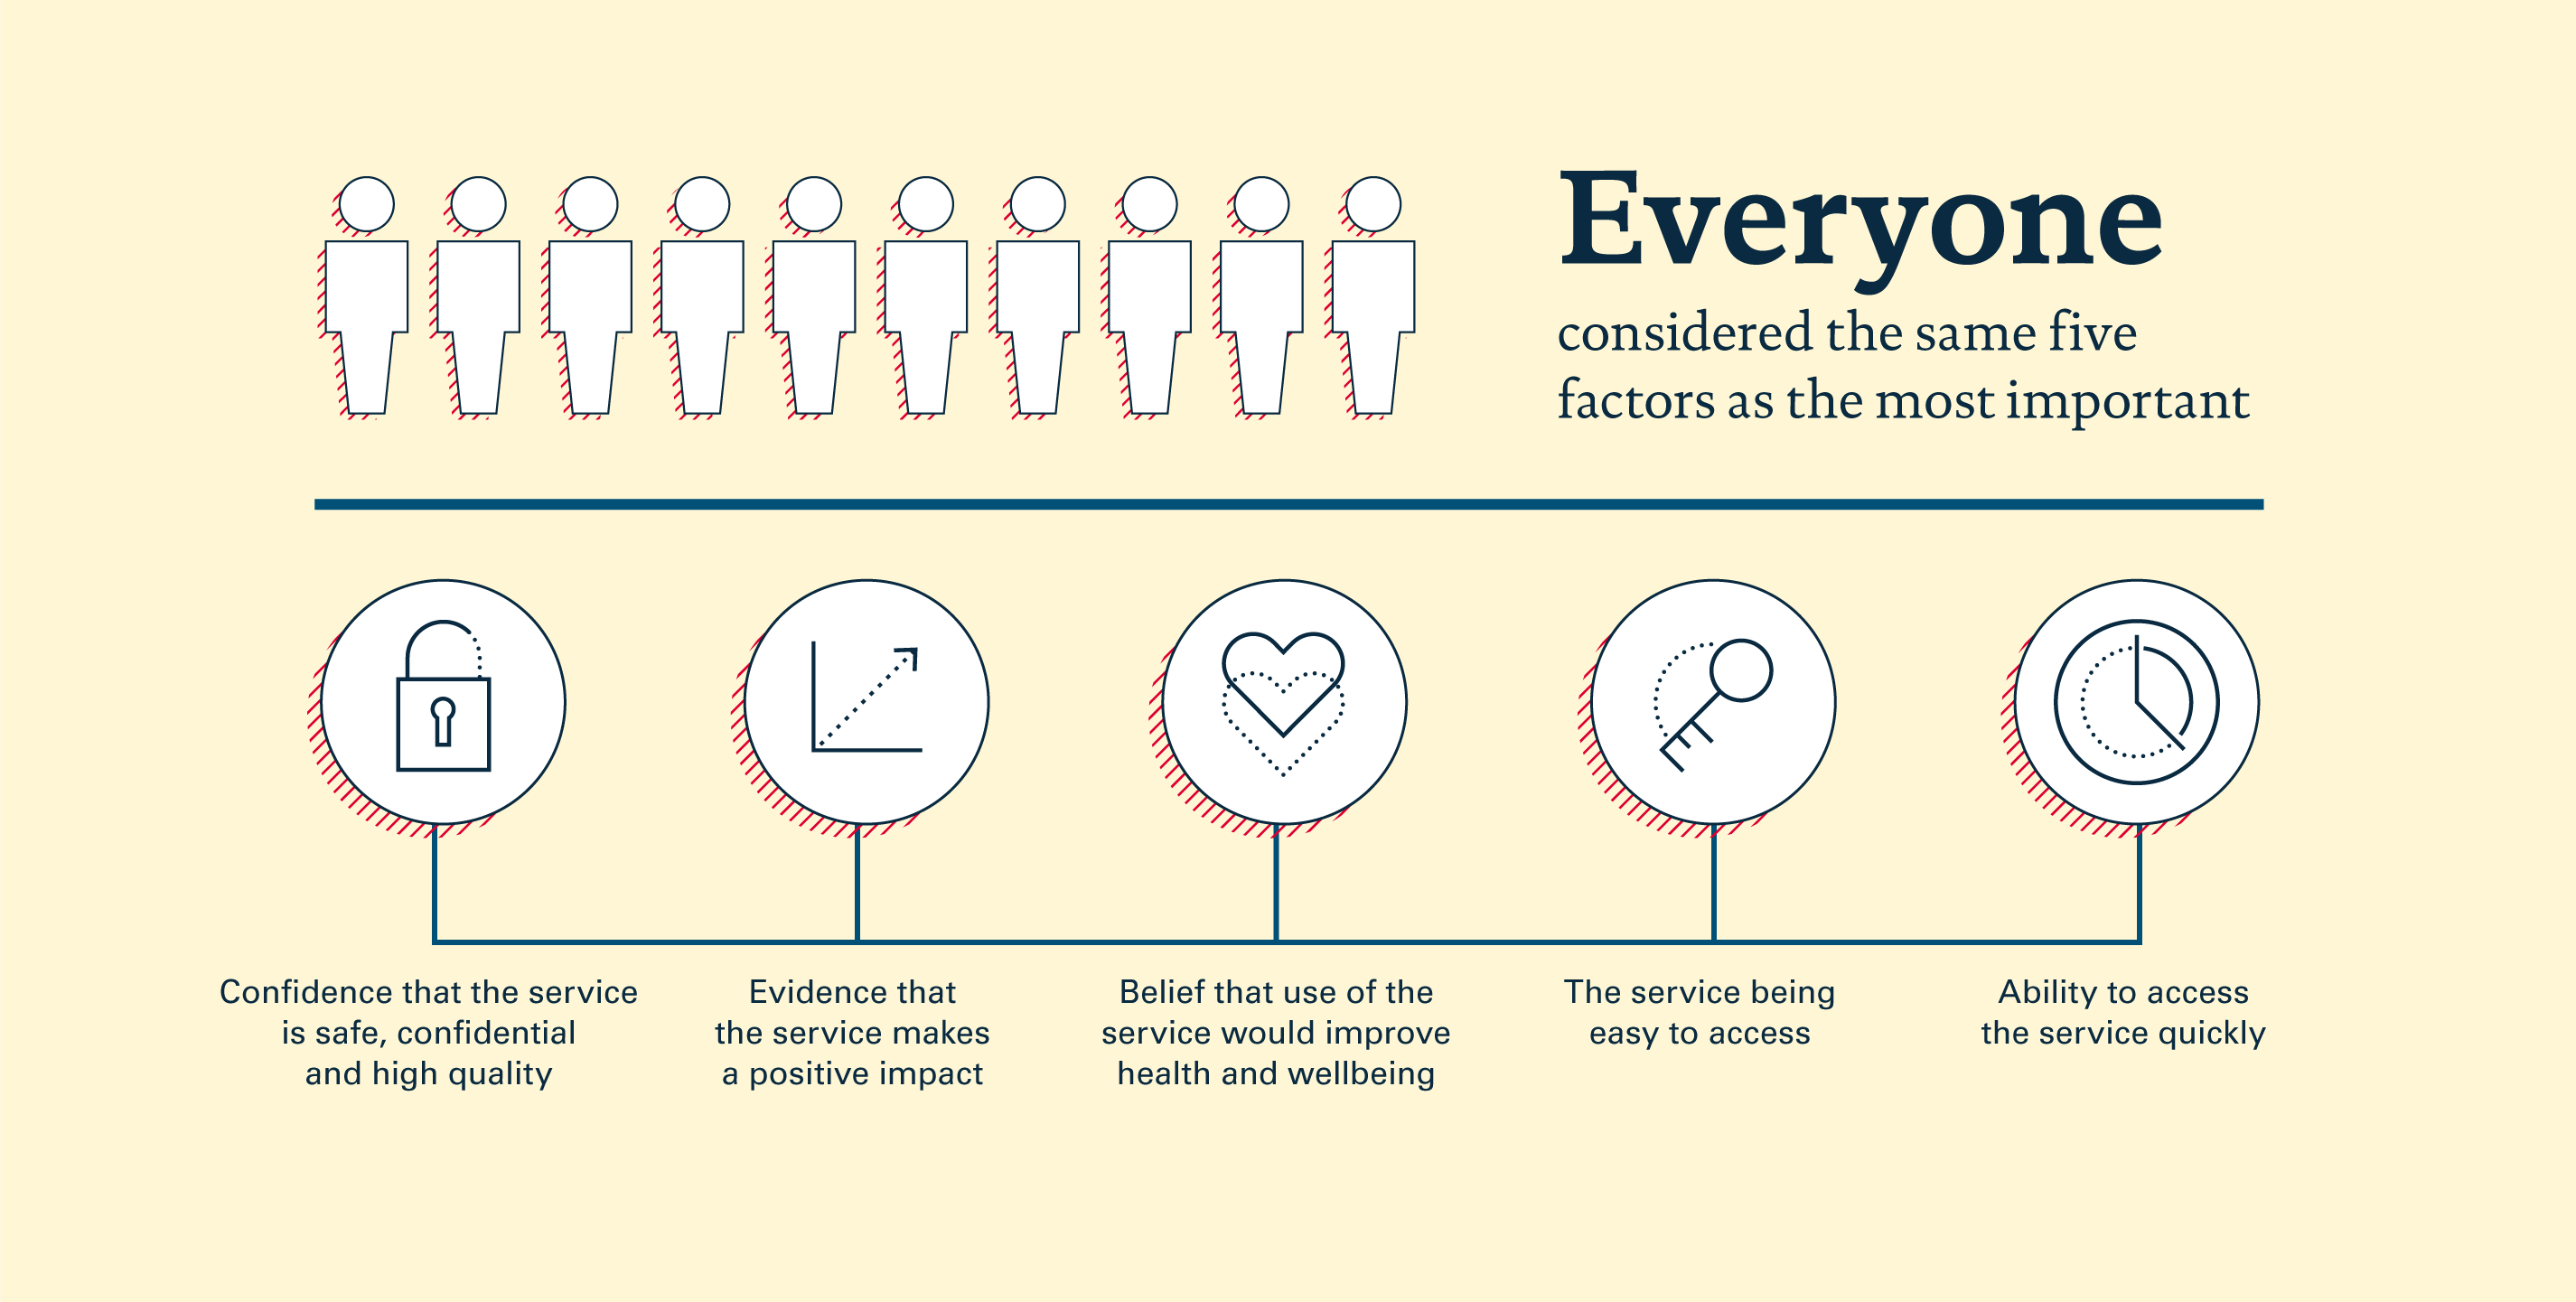 Infographic from peer support survey showing the five factors considered the most important